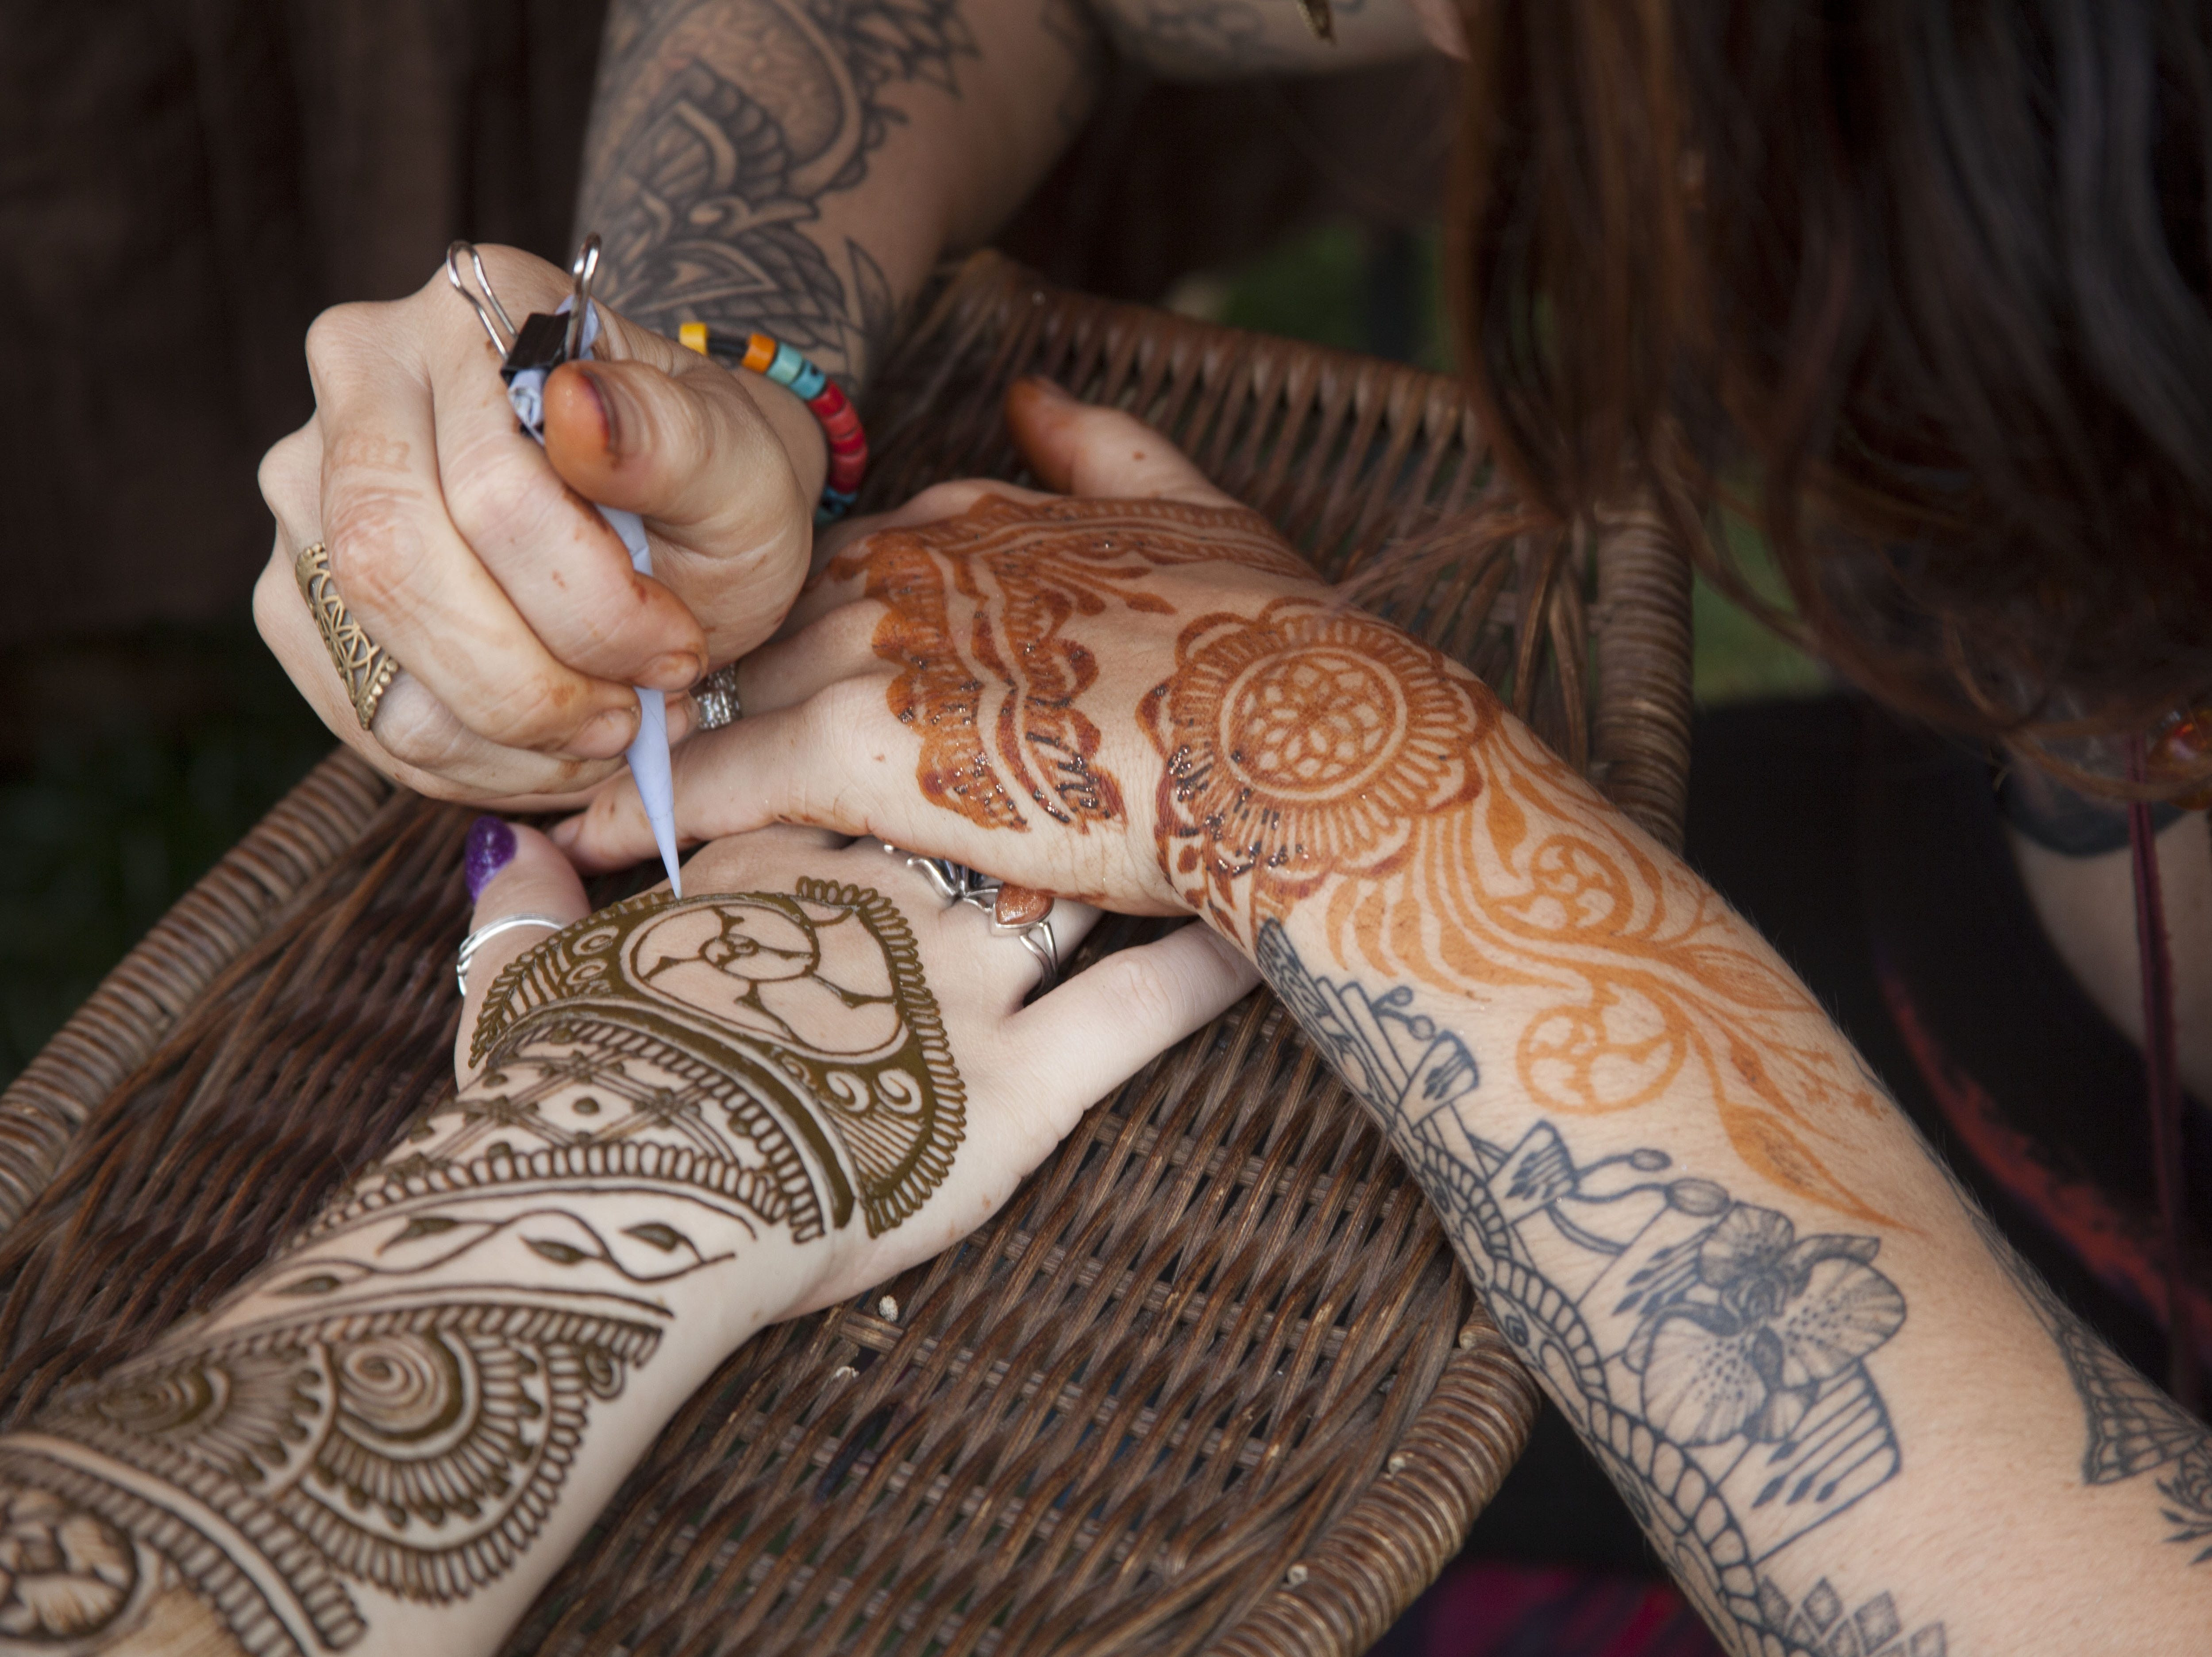 River D. creates henna tattoos at the 2018 Goombay Festival at the Roger McGuire Green in Pack Square Park on Sept. 8, 2018.